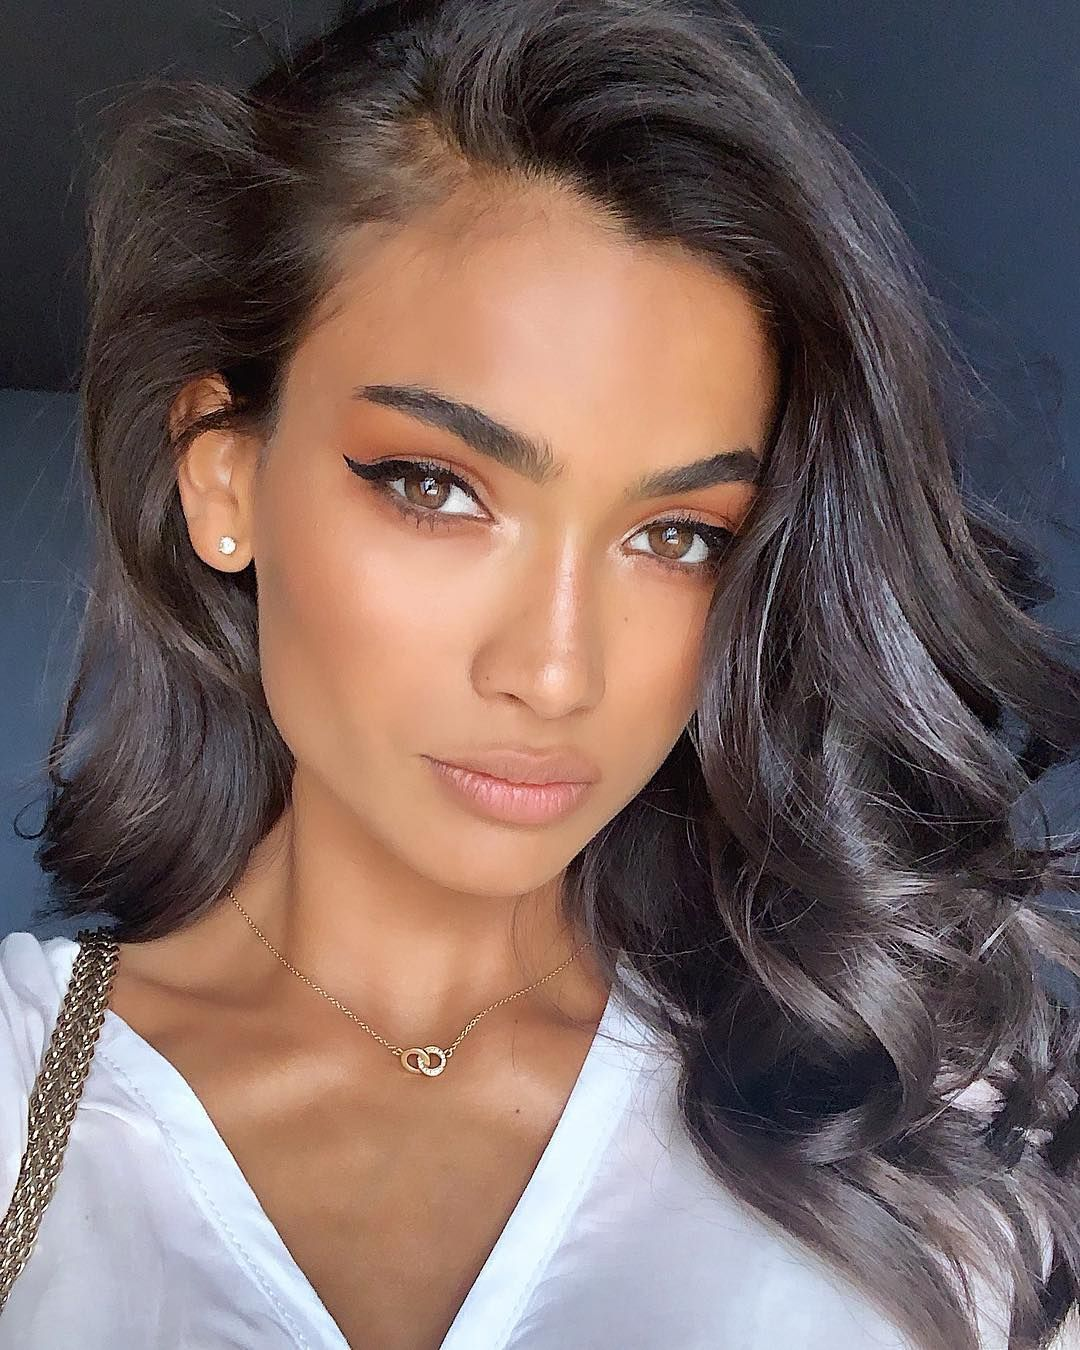 Kelly Gale Beautiful Face - Kelly Gale Net Worth, Pics, Wallpapers, Career and Biography